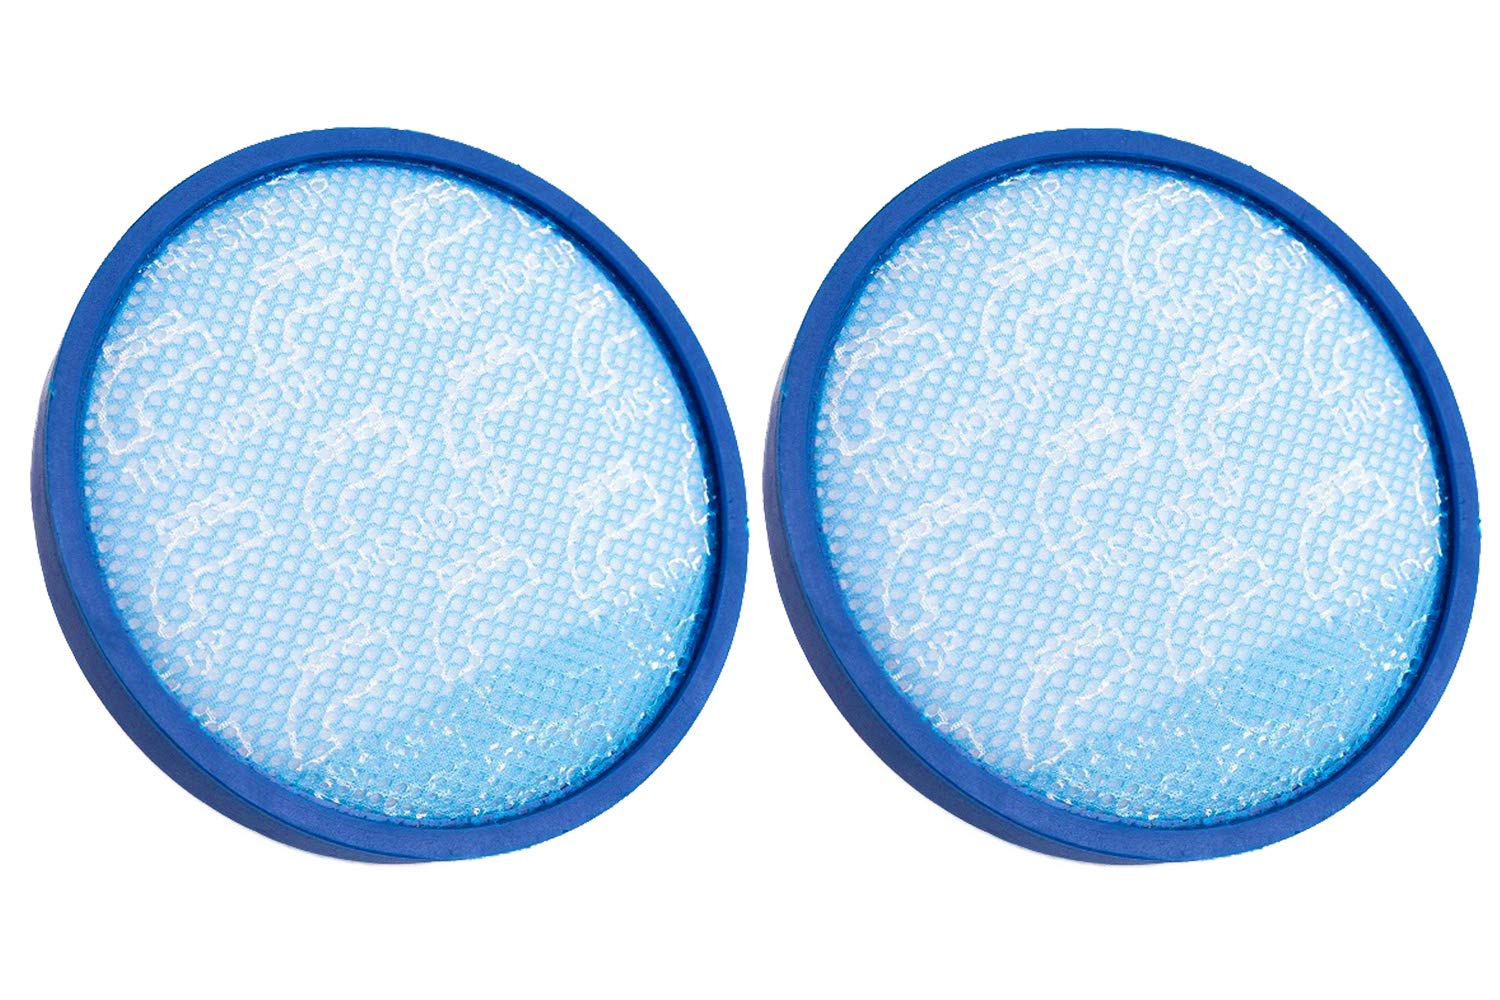 Green Label 2 Pack for Hoover Primary Blue Sponge Filter for WindTunnel, Elite Rewind and Elite Whole House Bagless Upright Vacuums (compares to 304087001). Washable